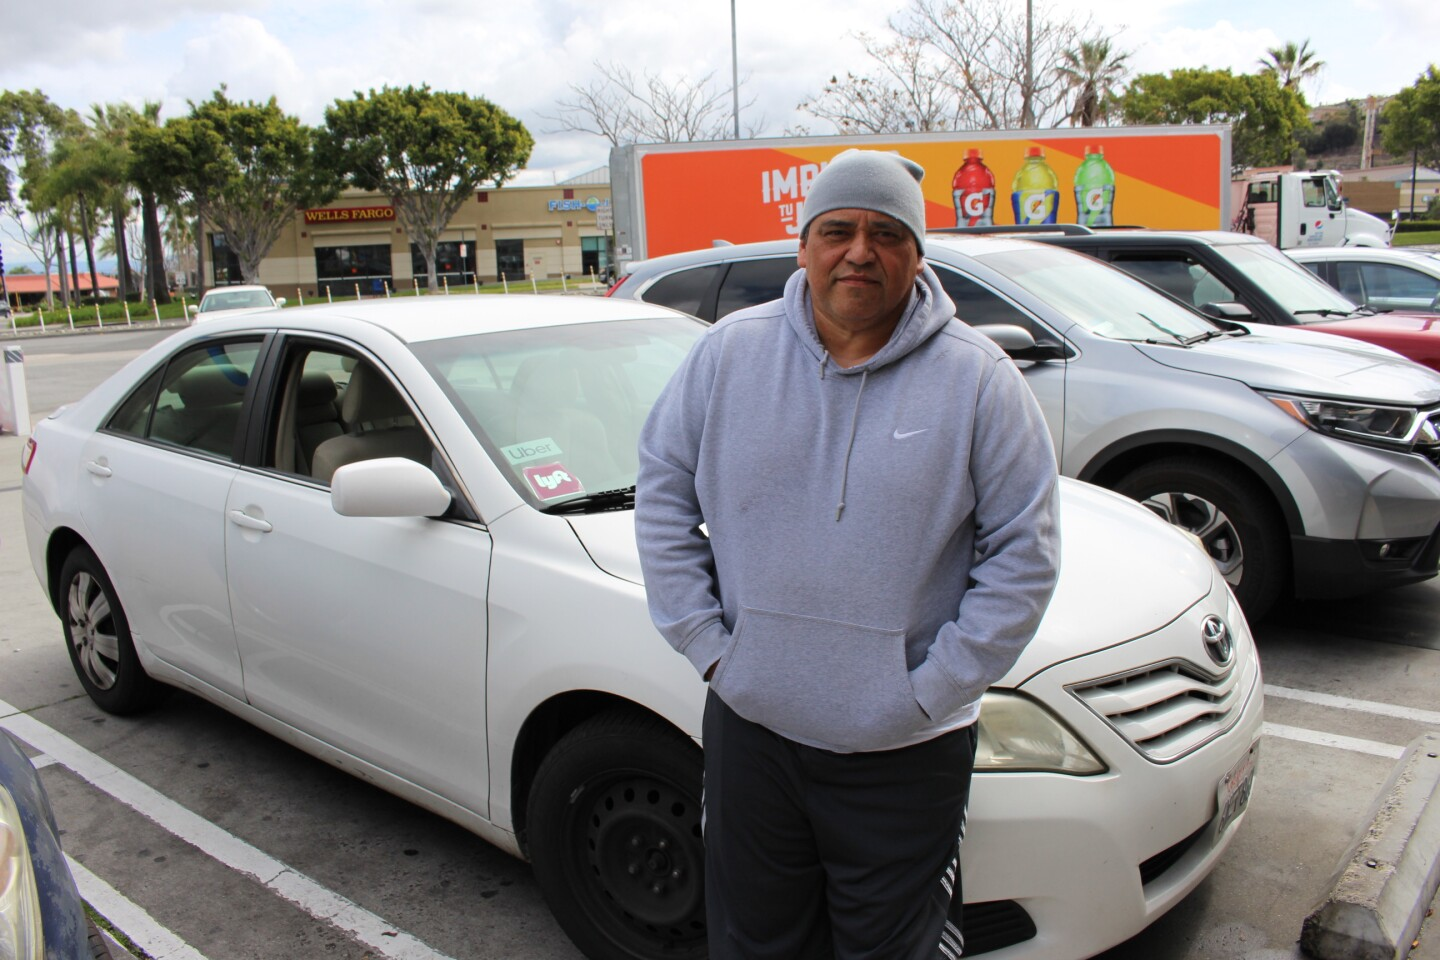 Ruben Gonzalez, uber driver, poses with his car